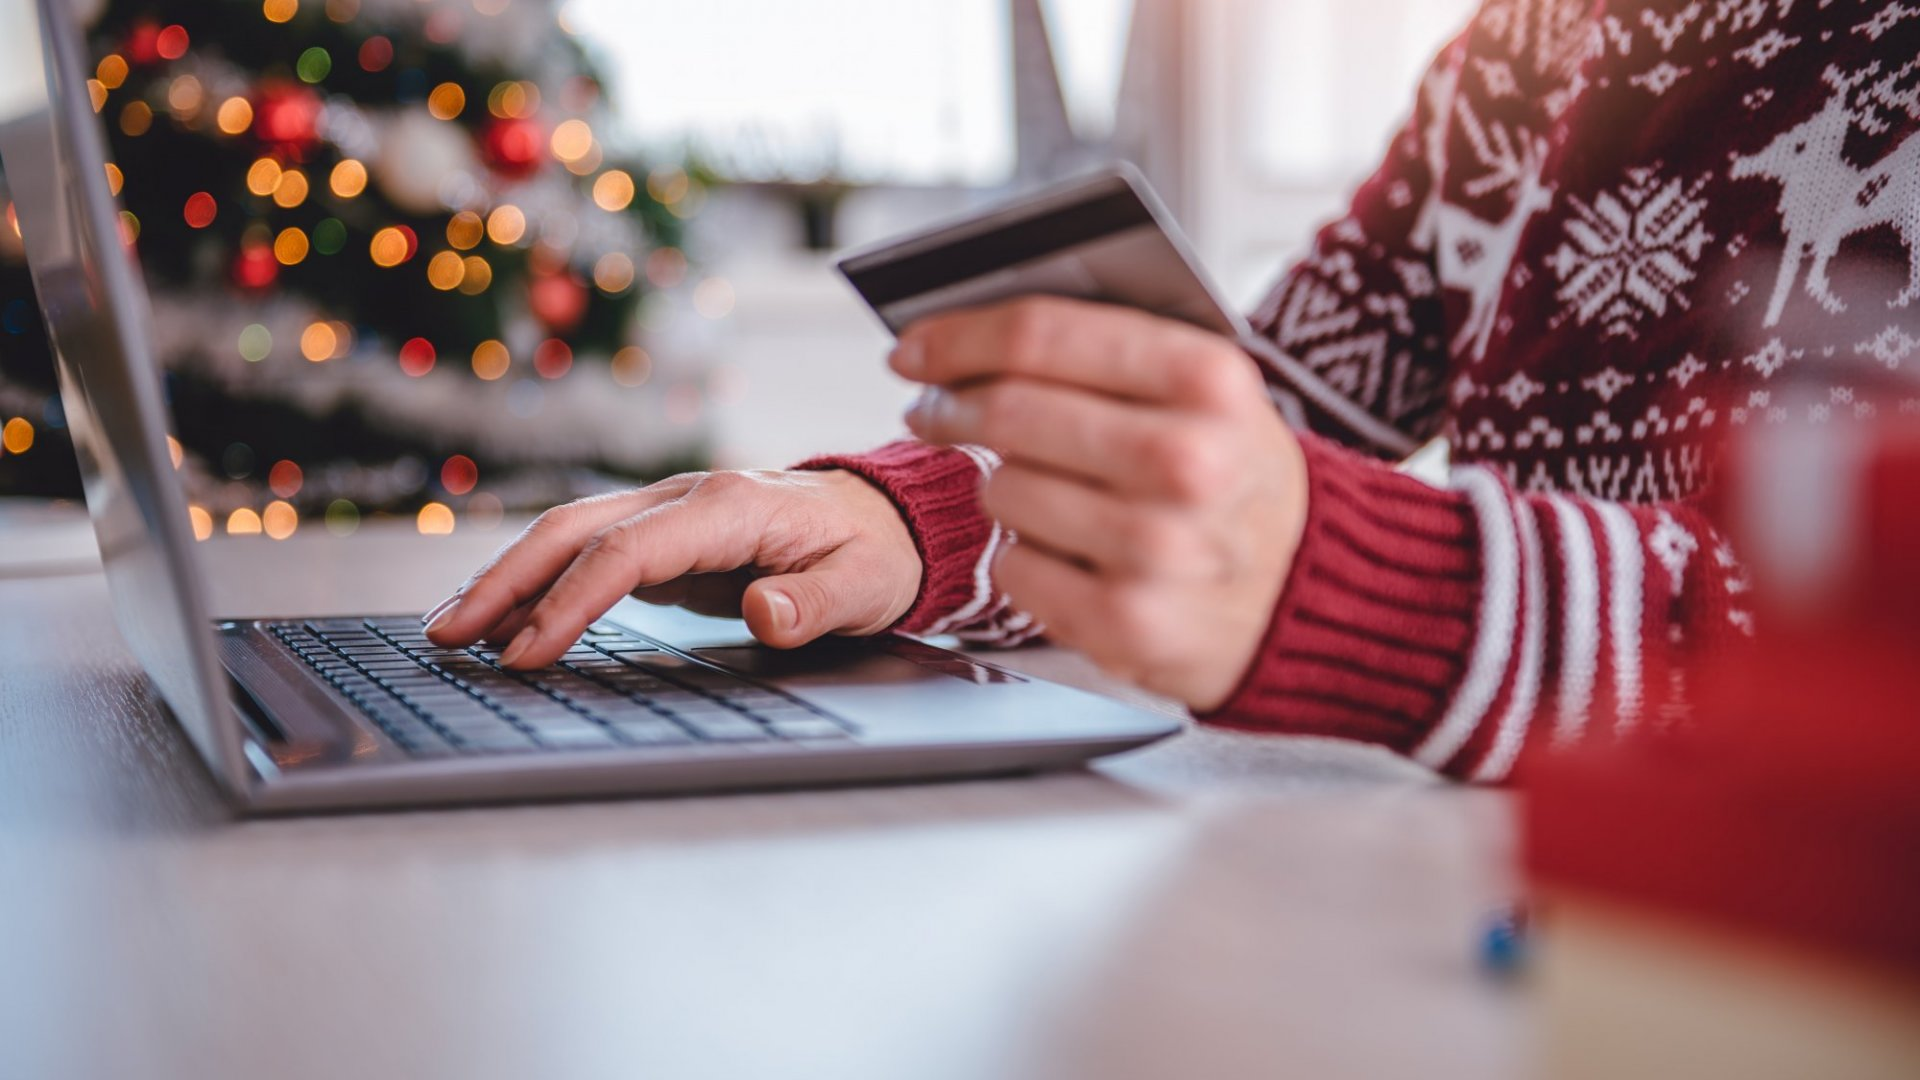 It's Cyber Monday and Your Employees Are Shopping at Their Desks